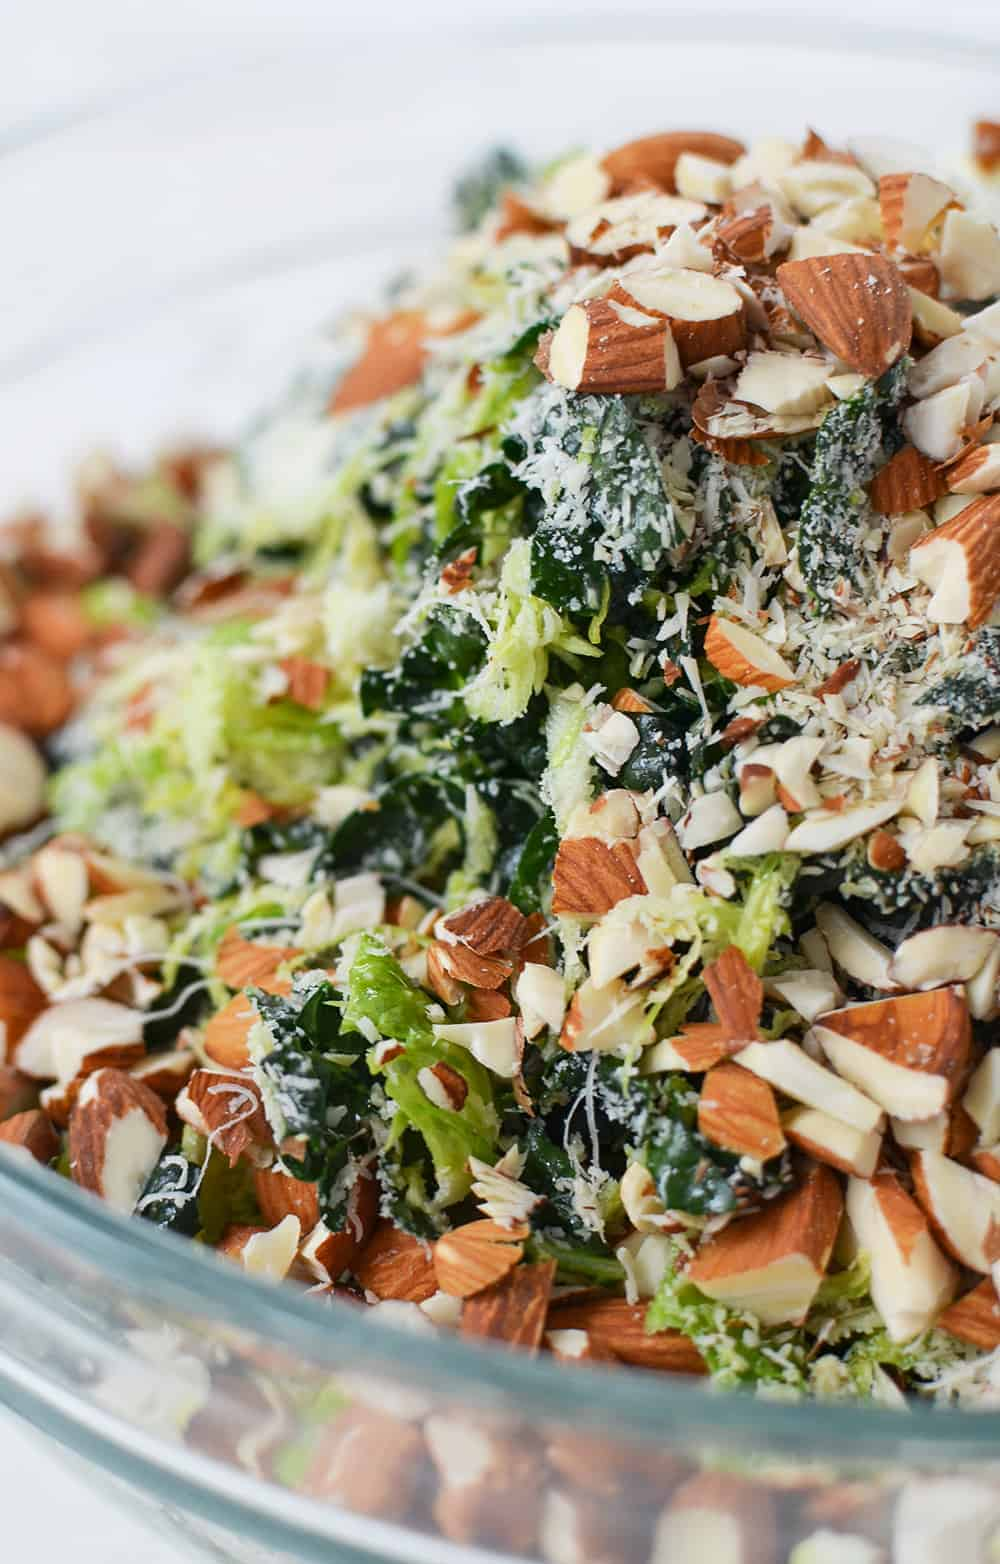 Shredded Brussels Sprouts Salad with Toasted Almonds and Grated Parmesan. The BEST salad, perfect for Thanksgiving and the holidays! You must make this one. | www.delishknowledge.com